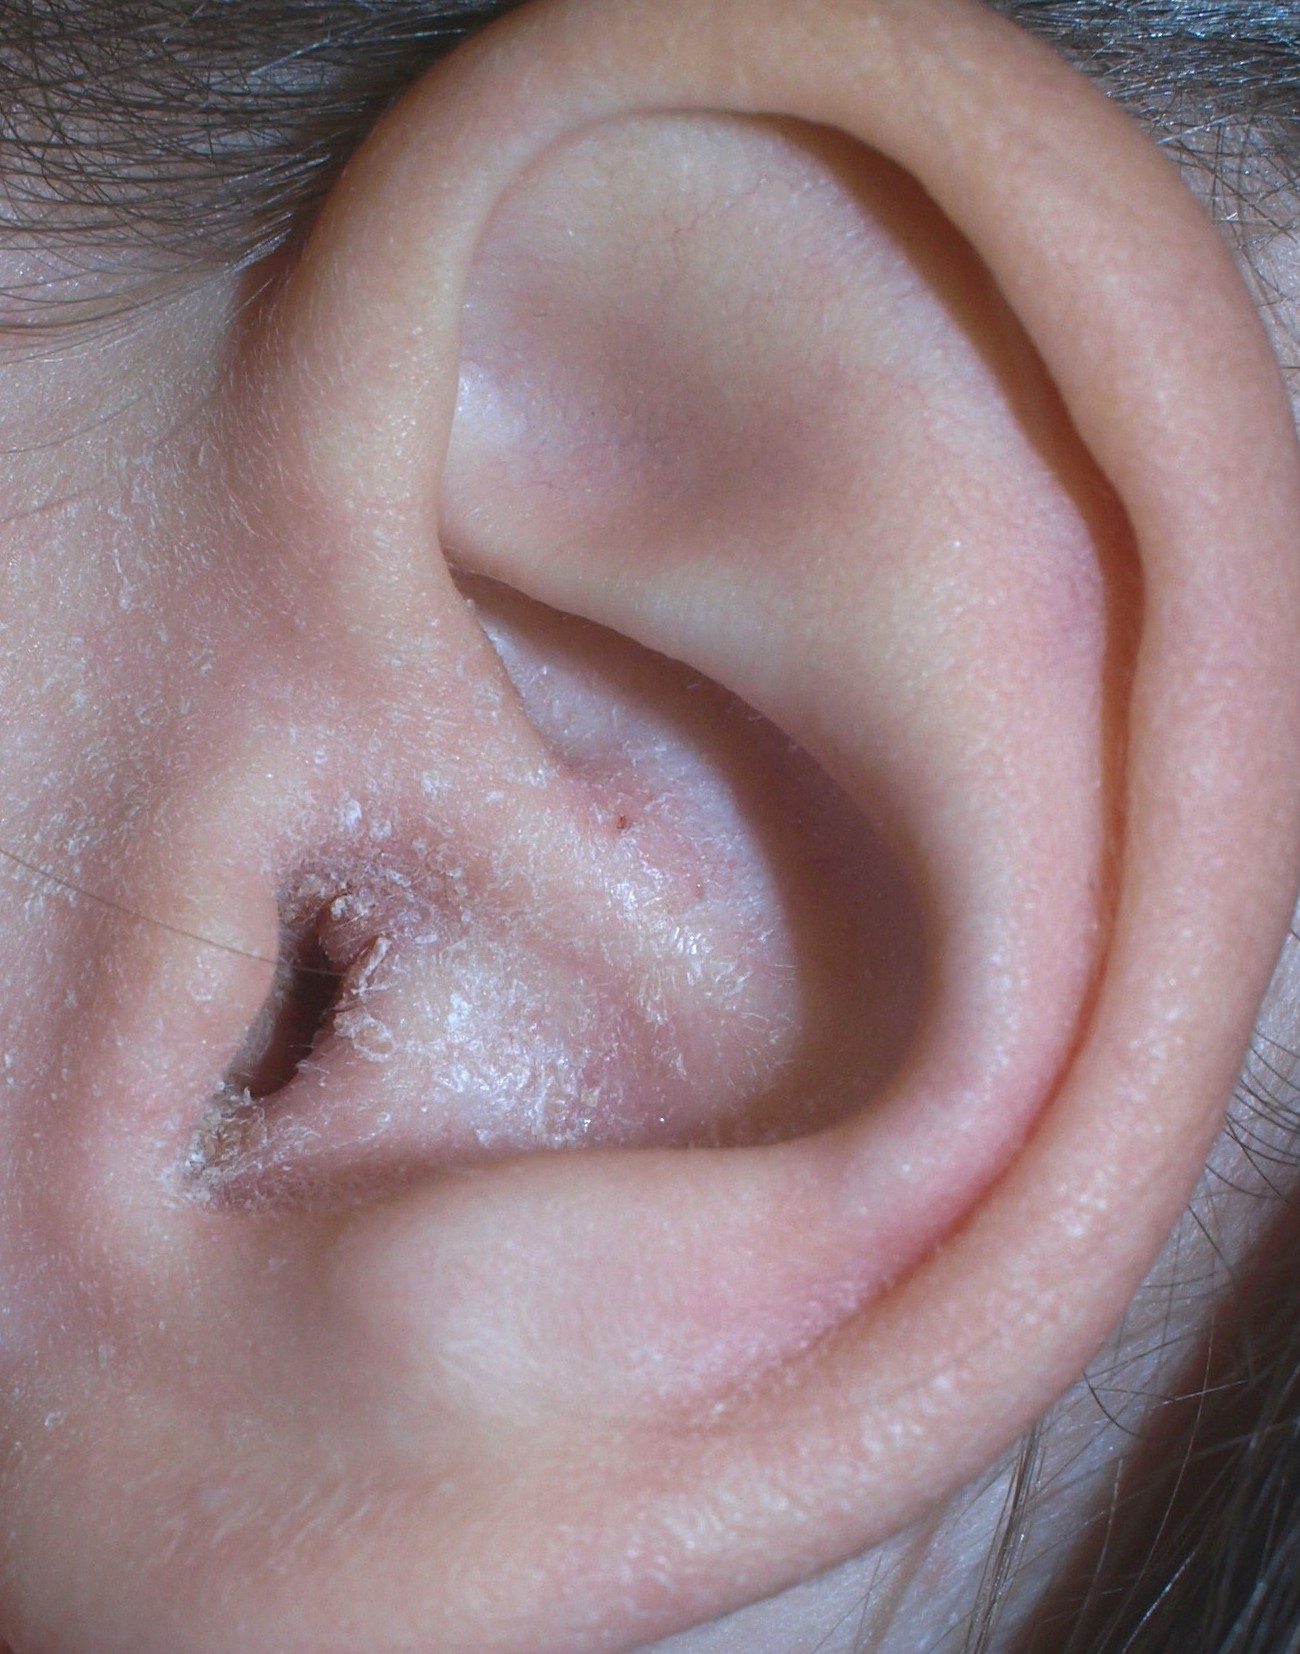 Ear infection - outer. Causes, symptoms, treatment Ear infection